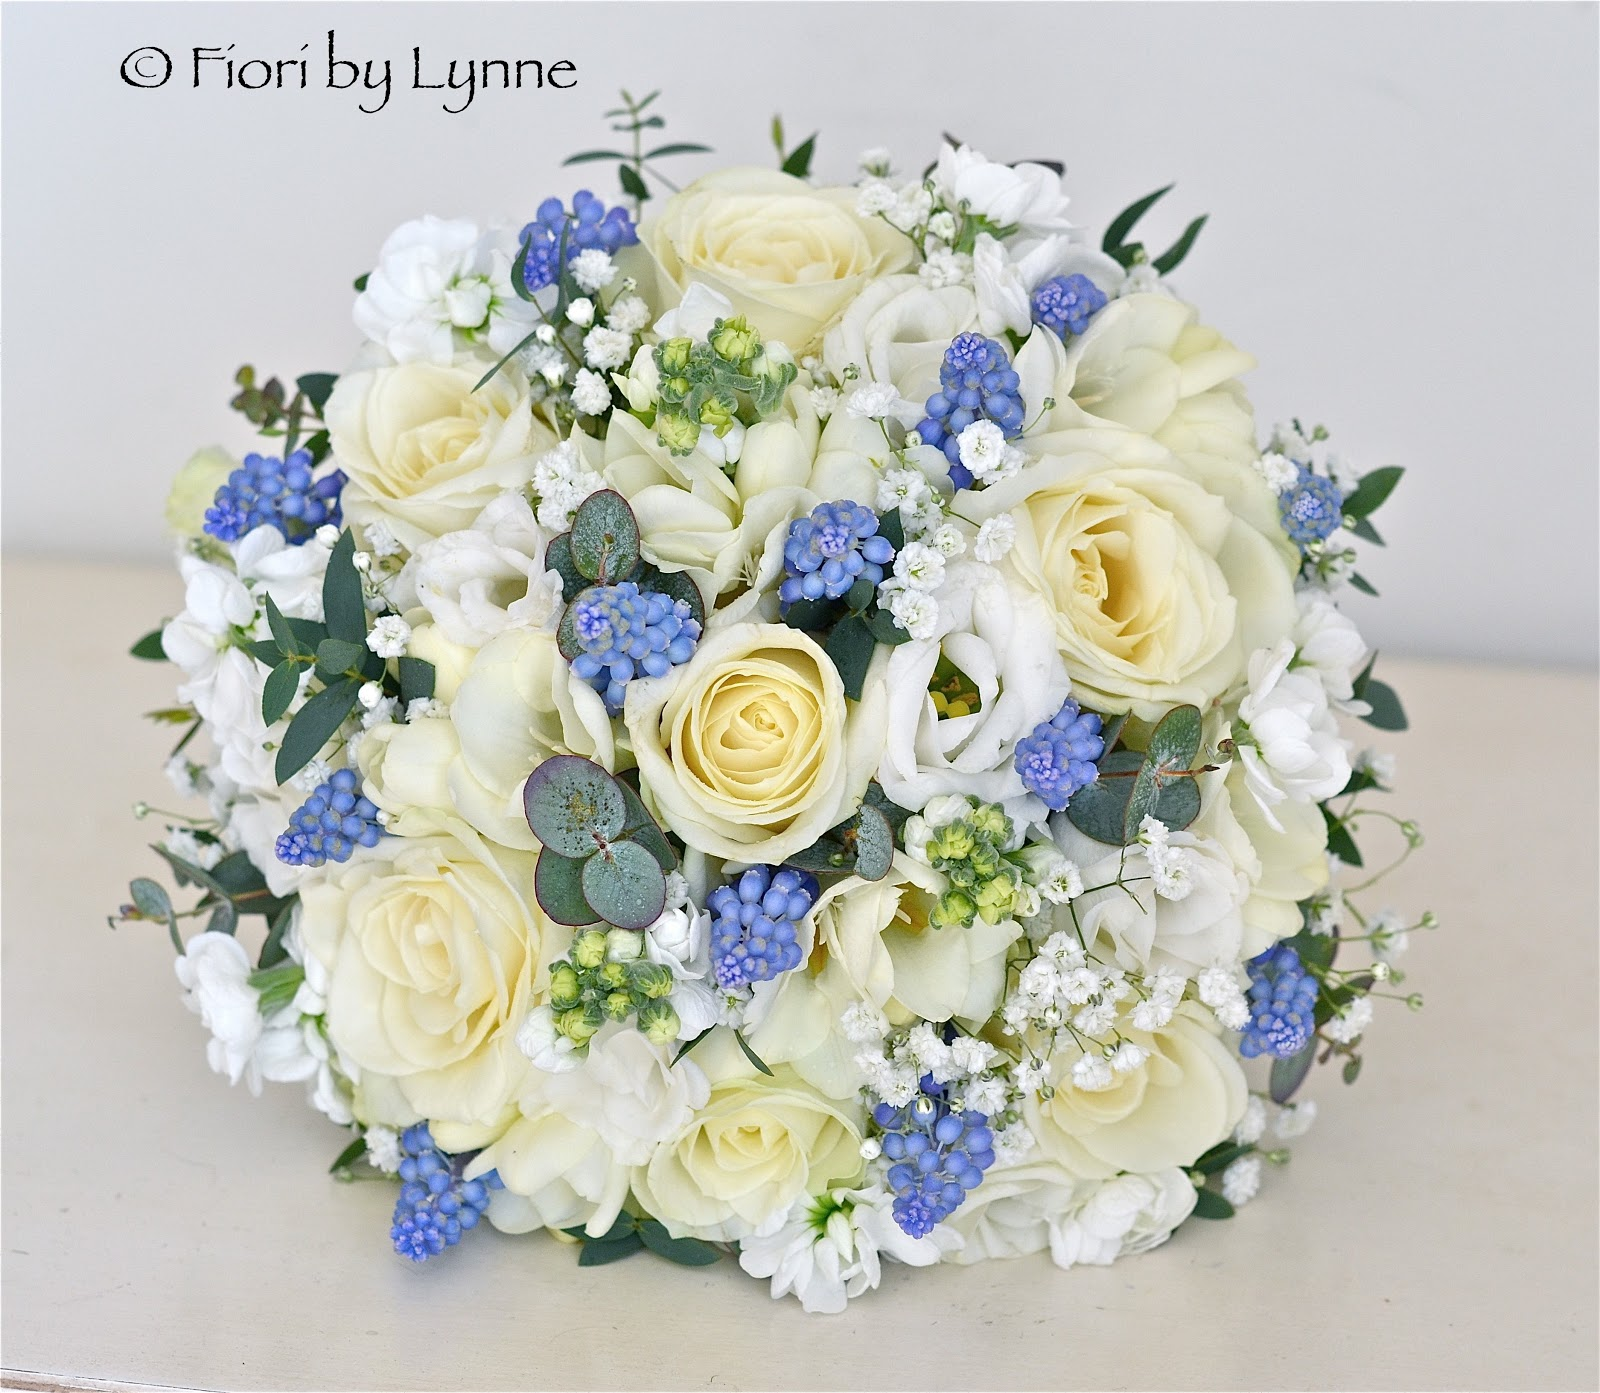 Wedding Bouquets With Blue Flowers: Wedding Flowers Blog: Carmen's Blue And White Spring